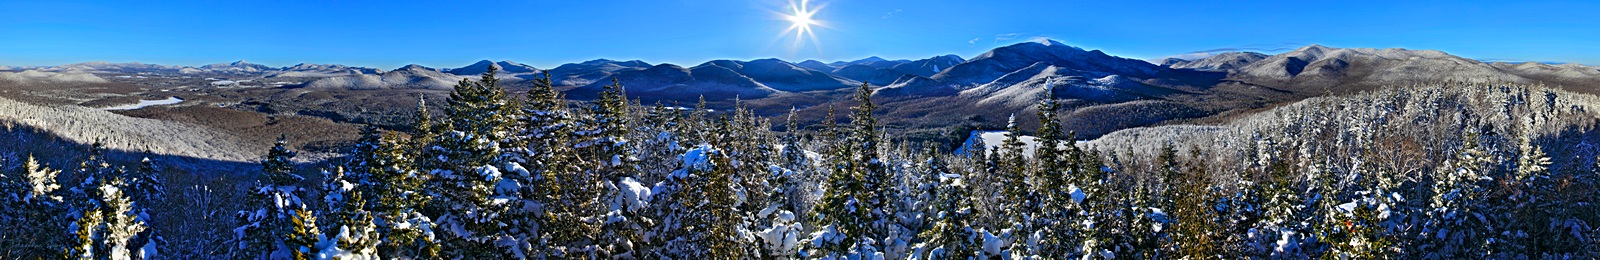 360 degree,treetop,Mt Jo,Heart Lake,winter,High Peaks,Adirondack Mountains,360 degree treetop,Johnathan Esper,Adirondacks,High Peaks,range,mountains,, photo